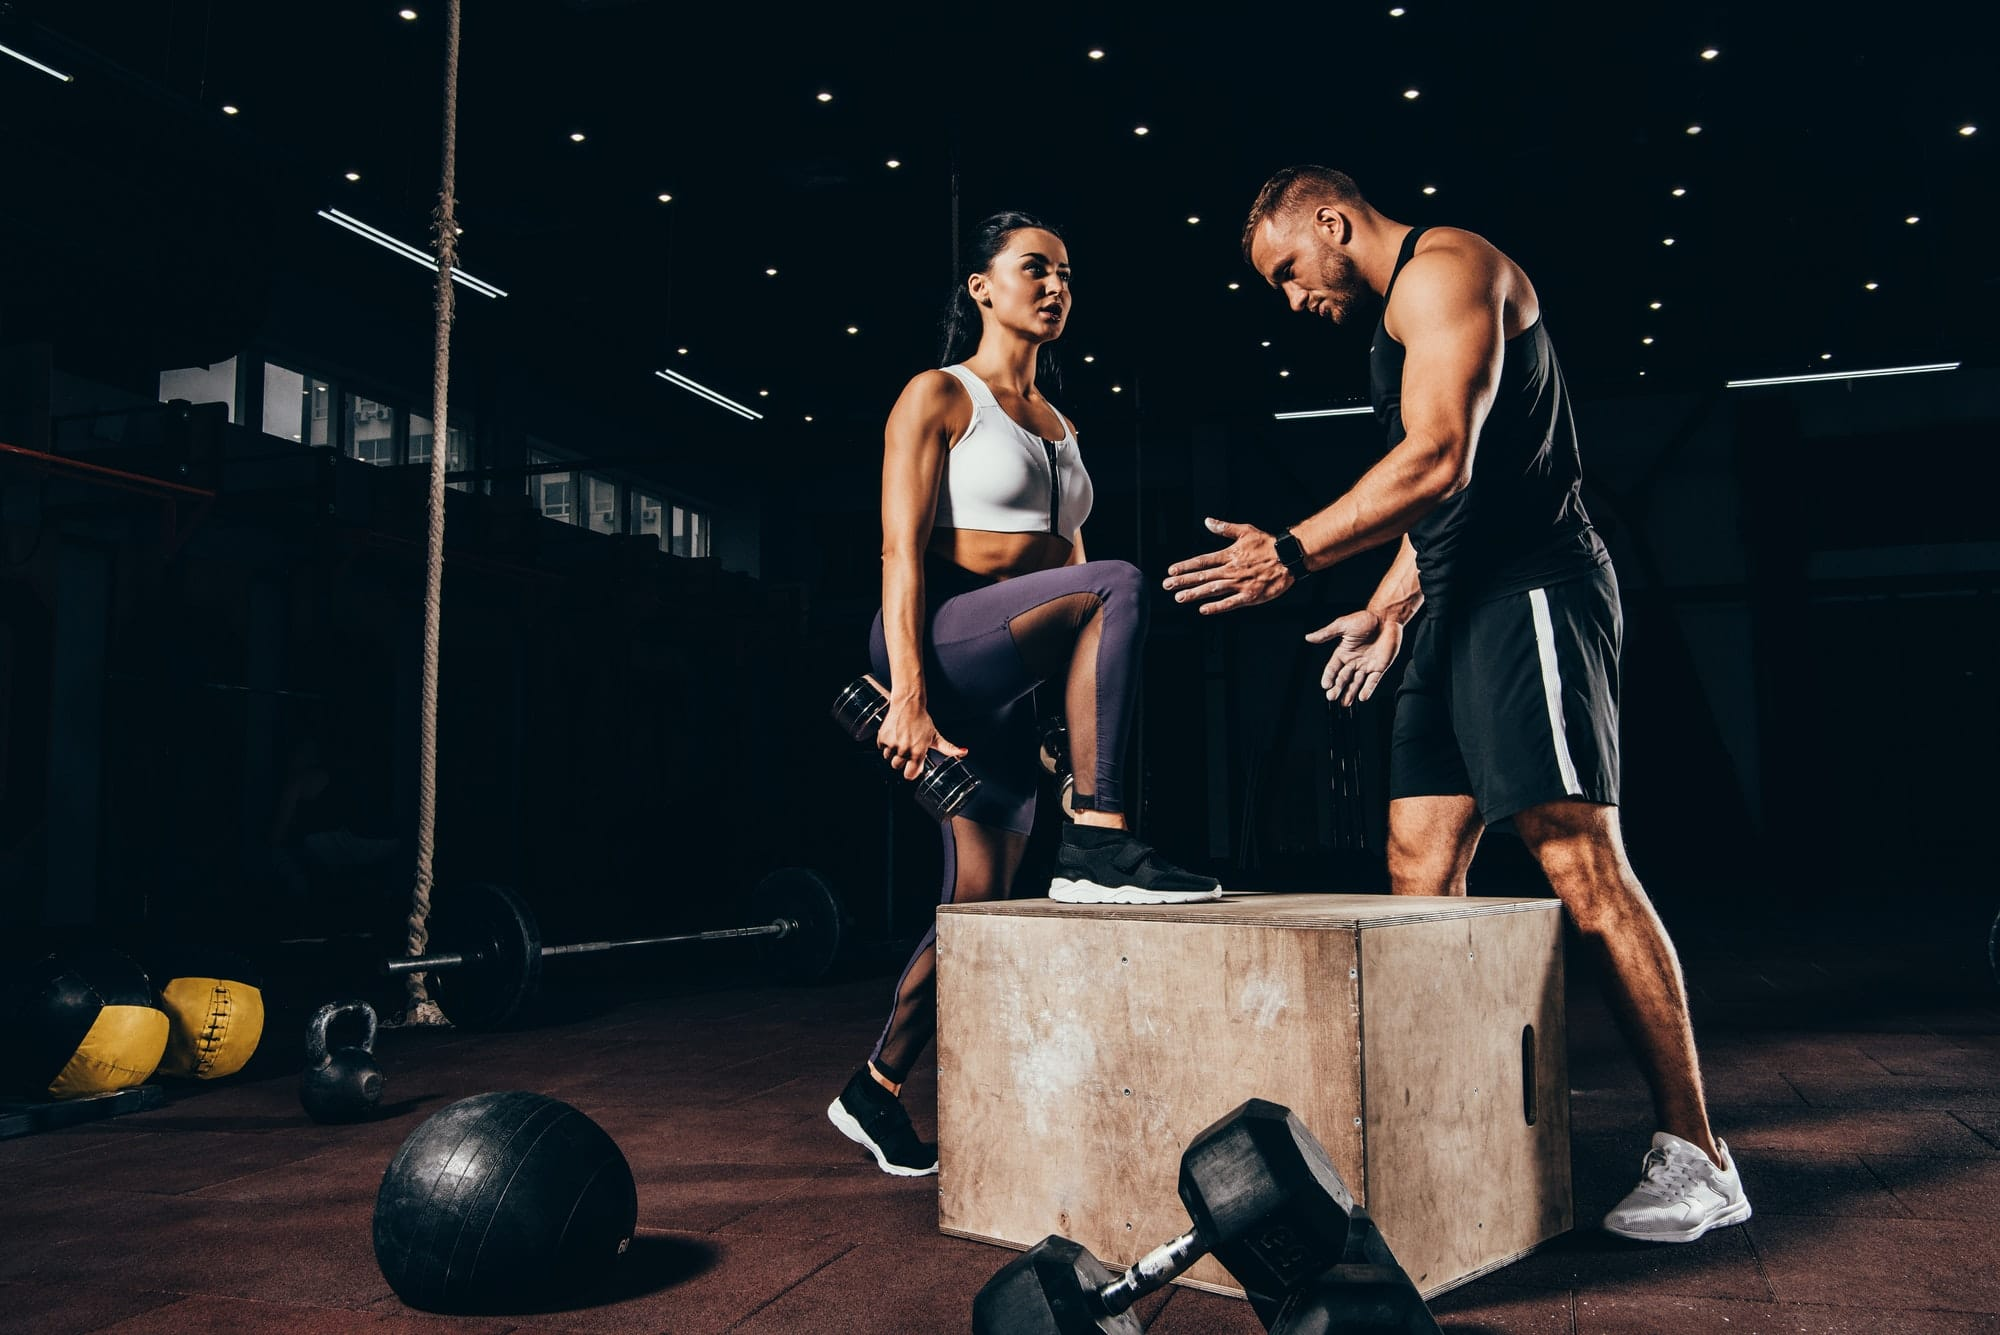 fit woman exercising with trainer on cube in dark gym